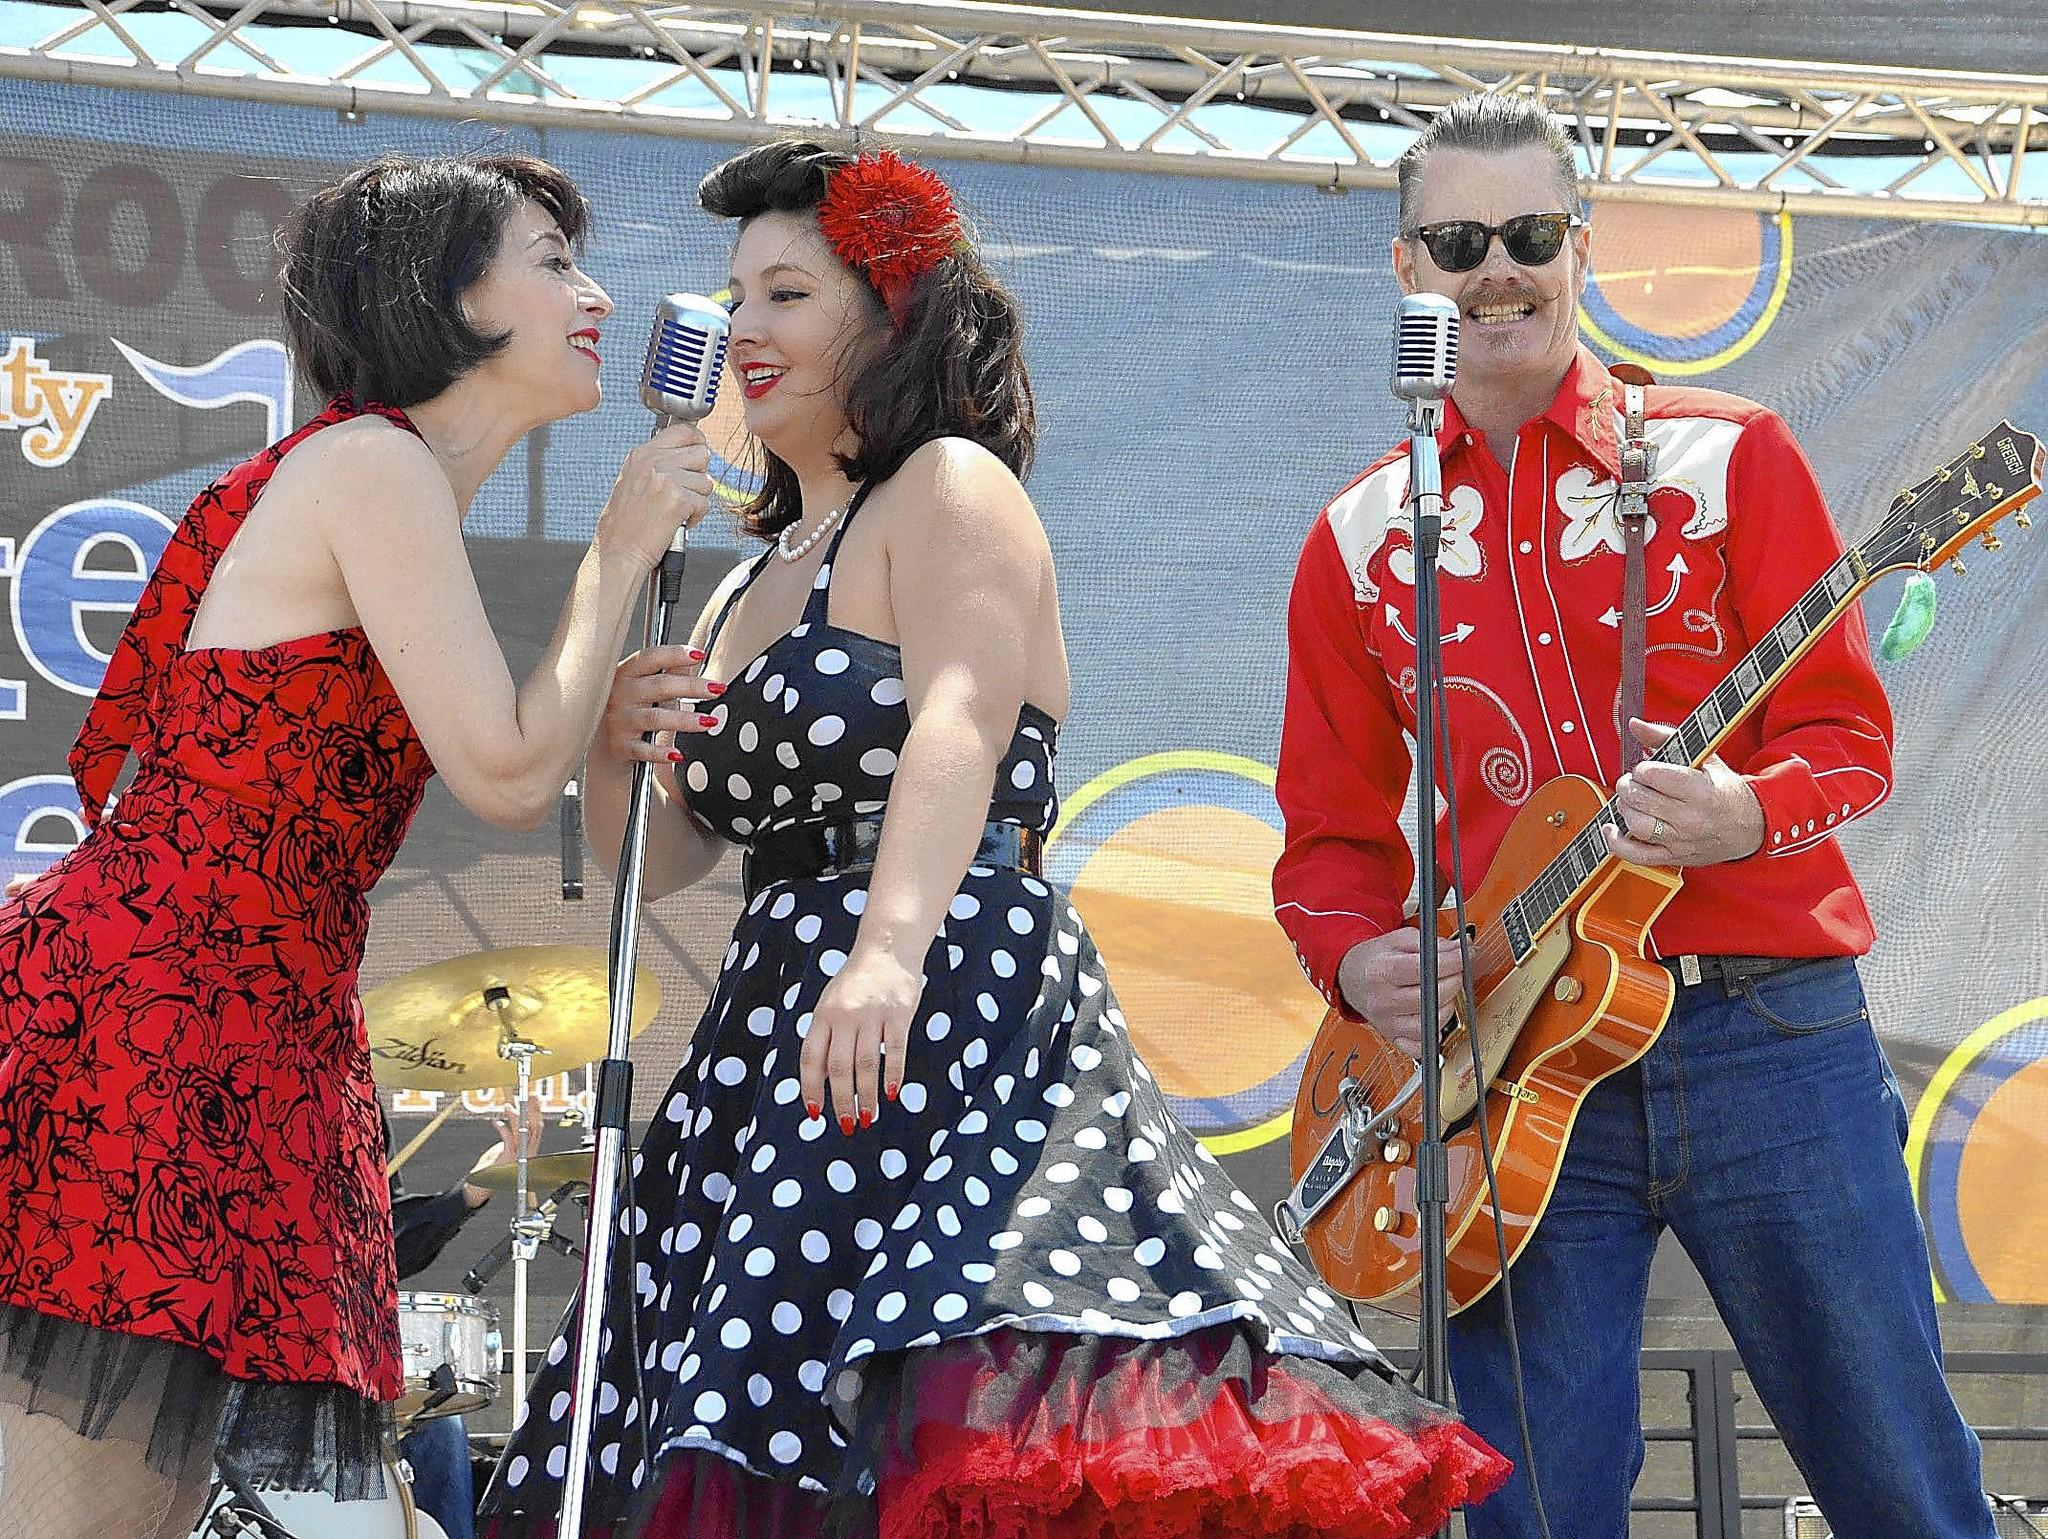 Members of Maureen and the Mercury 5, including Maureen Davis, far left, and guitarist Scott McLean, right, perform a swinging set of '50s rock 'n' roll in the style of Ann Margaret and Elvis, during the fifth annual West Coast Rockabilly Showdown competition at the OC Marketplace on Saturday afternoon. The event features eight unsigned and independent rockabilly bands who compete for $3,000.